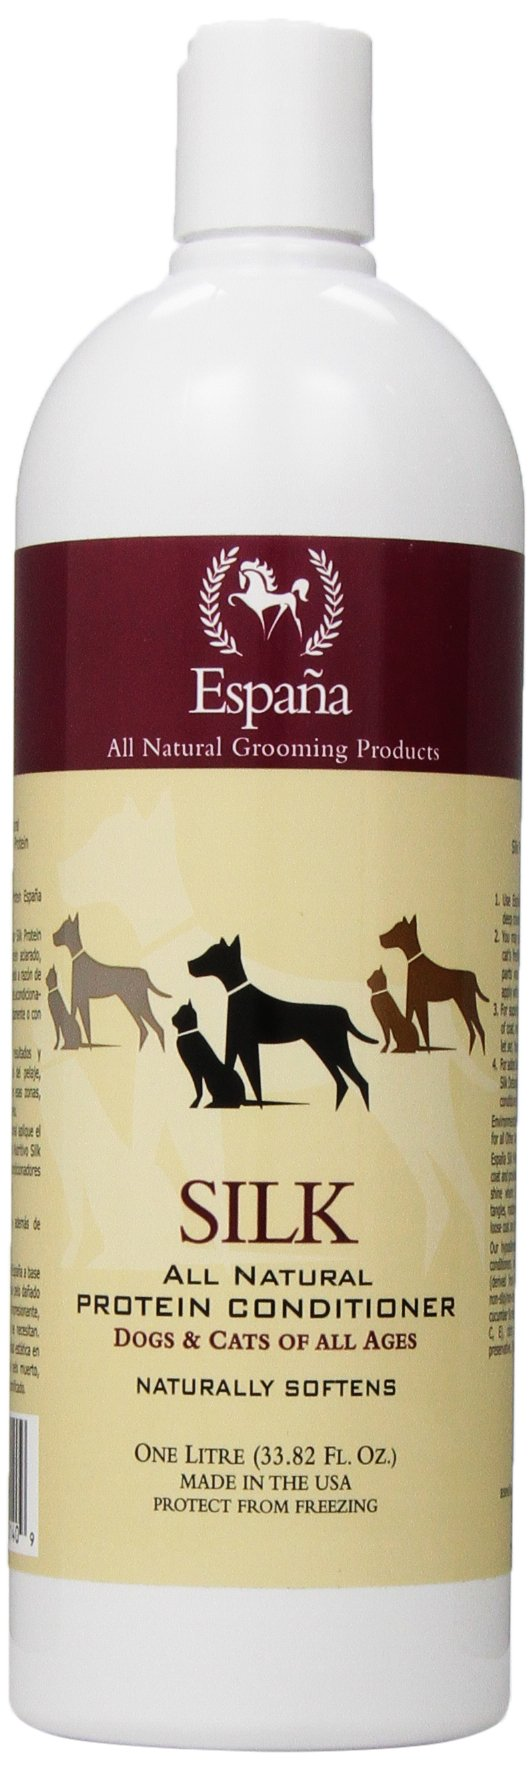 Espana Silk ESP1020DC Specially Formulated Silk Protein Conditioner for Dogs and Cats, 33.82-Ounce